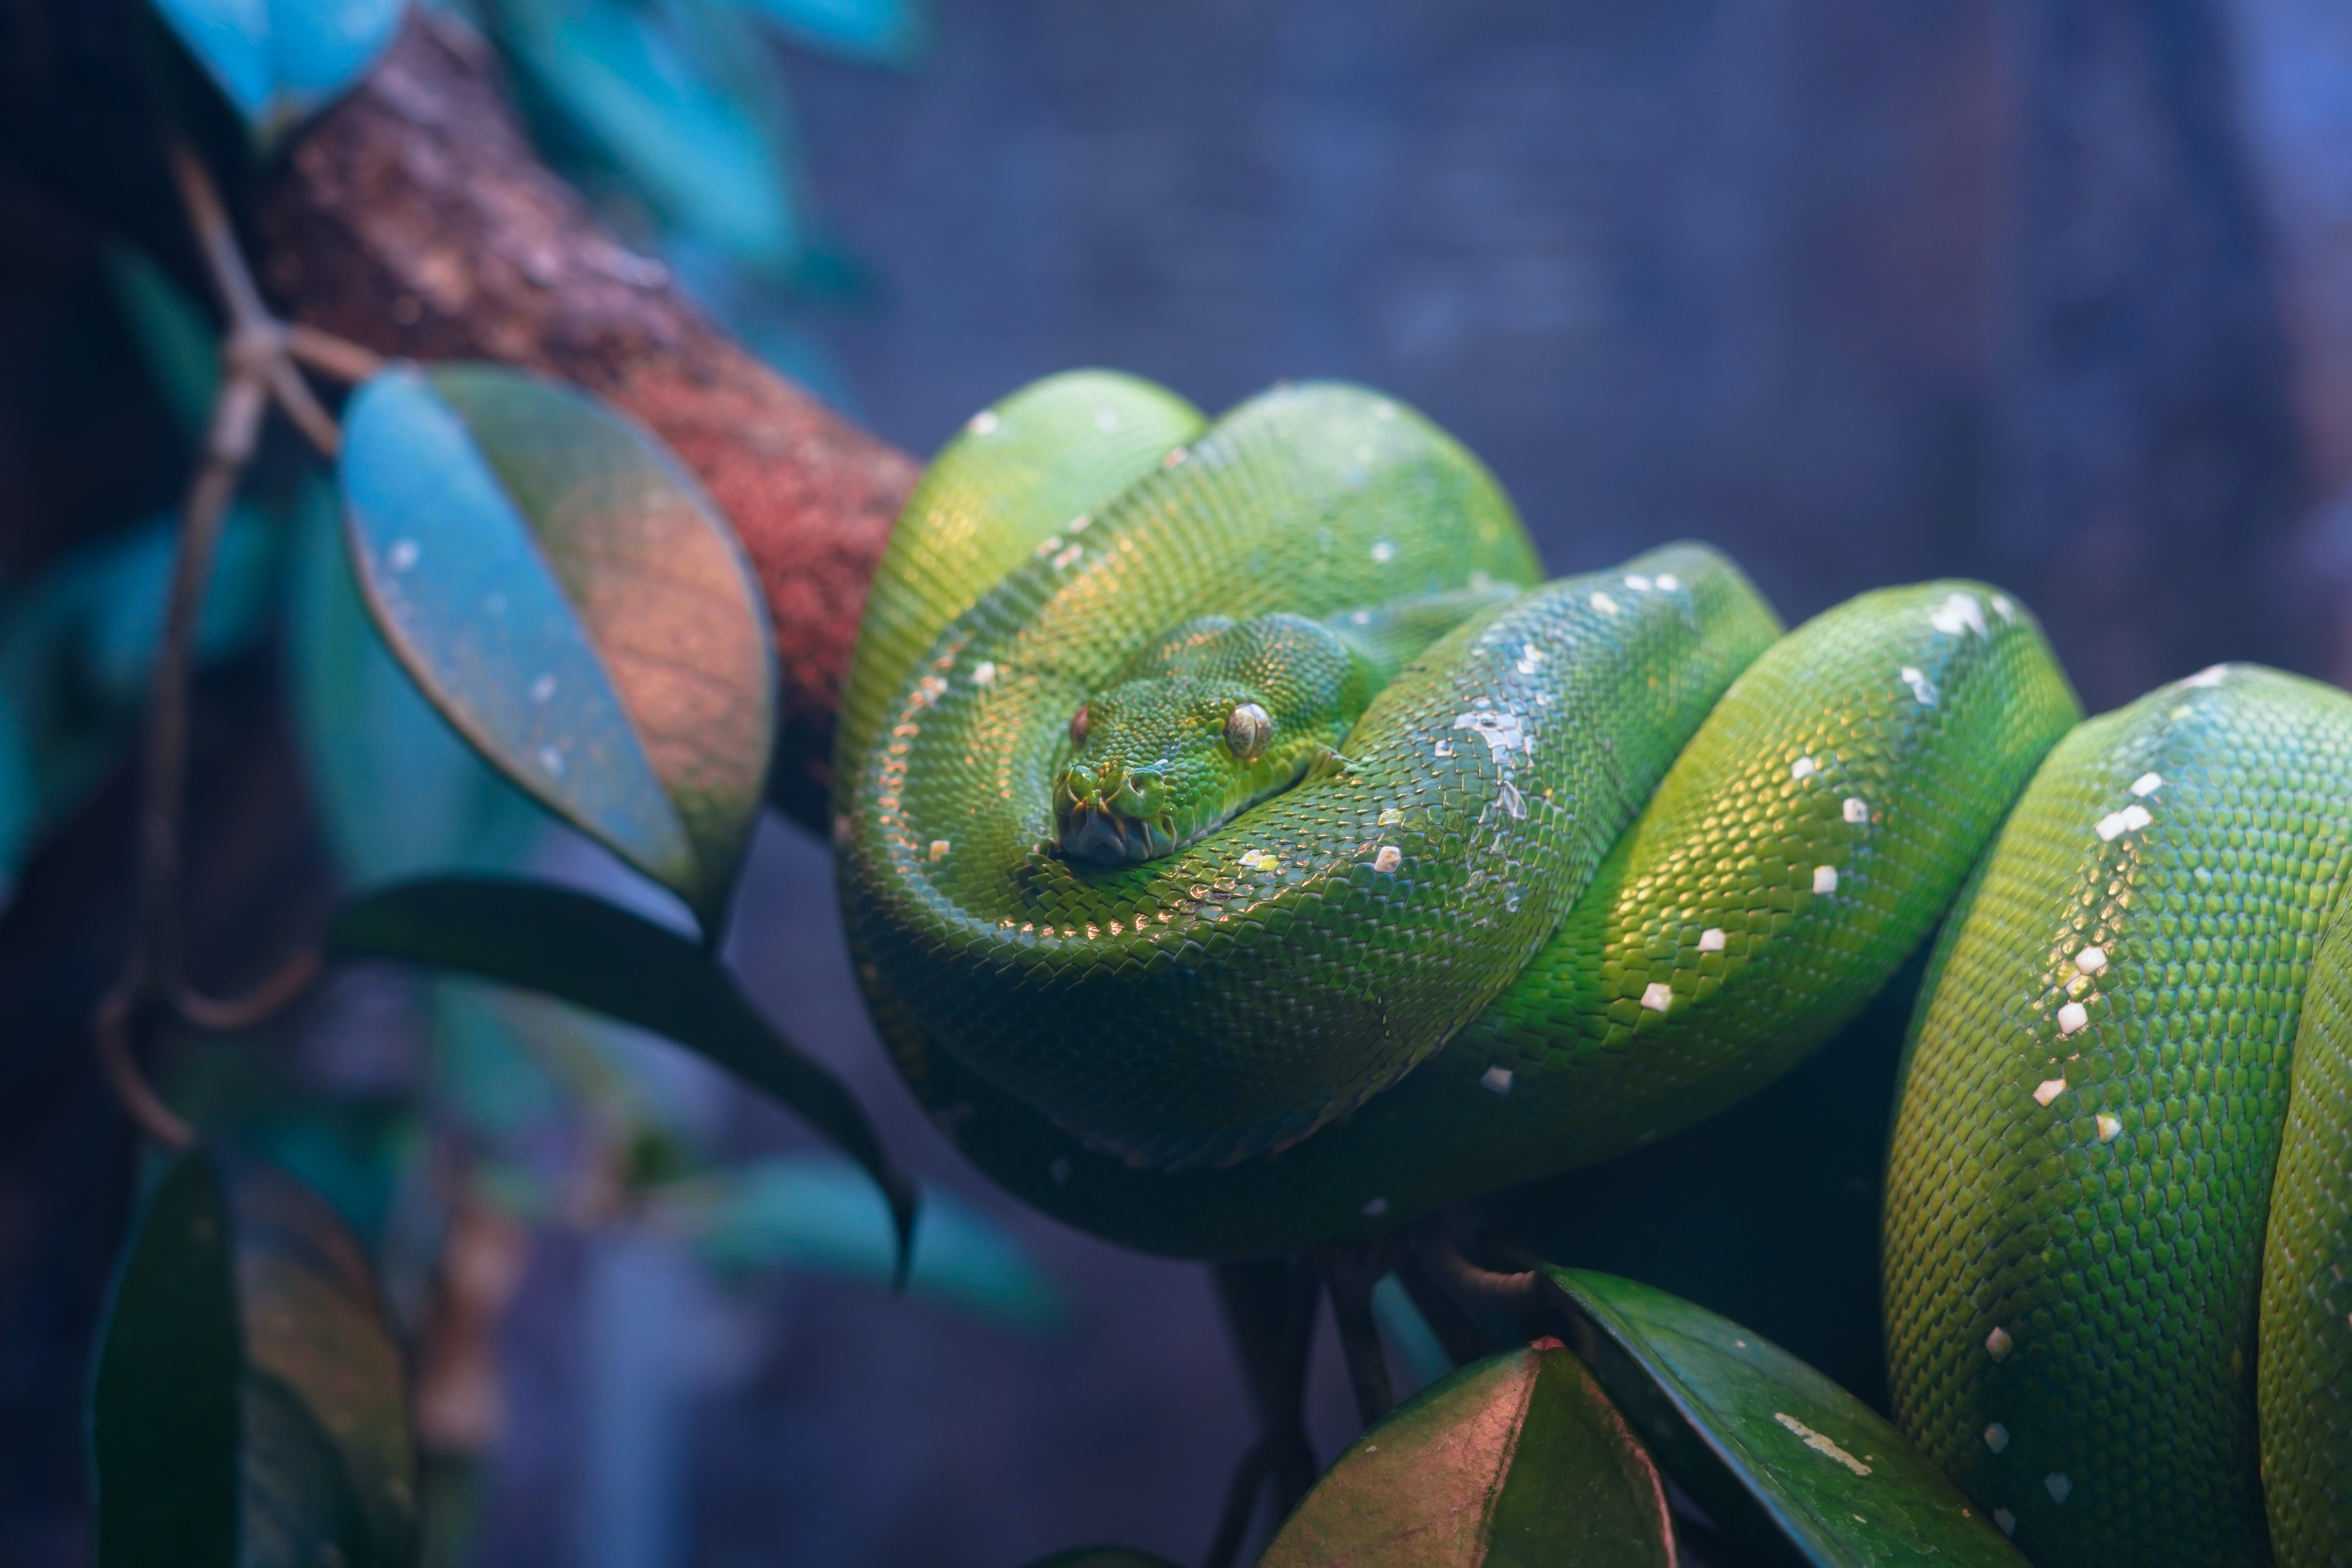 pit viper coiled on tree branch